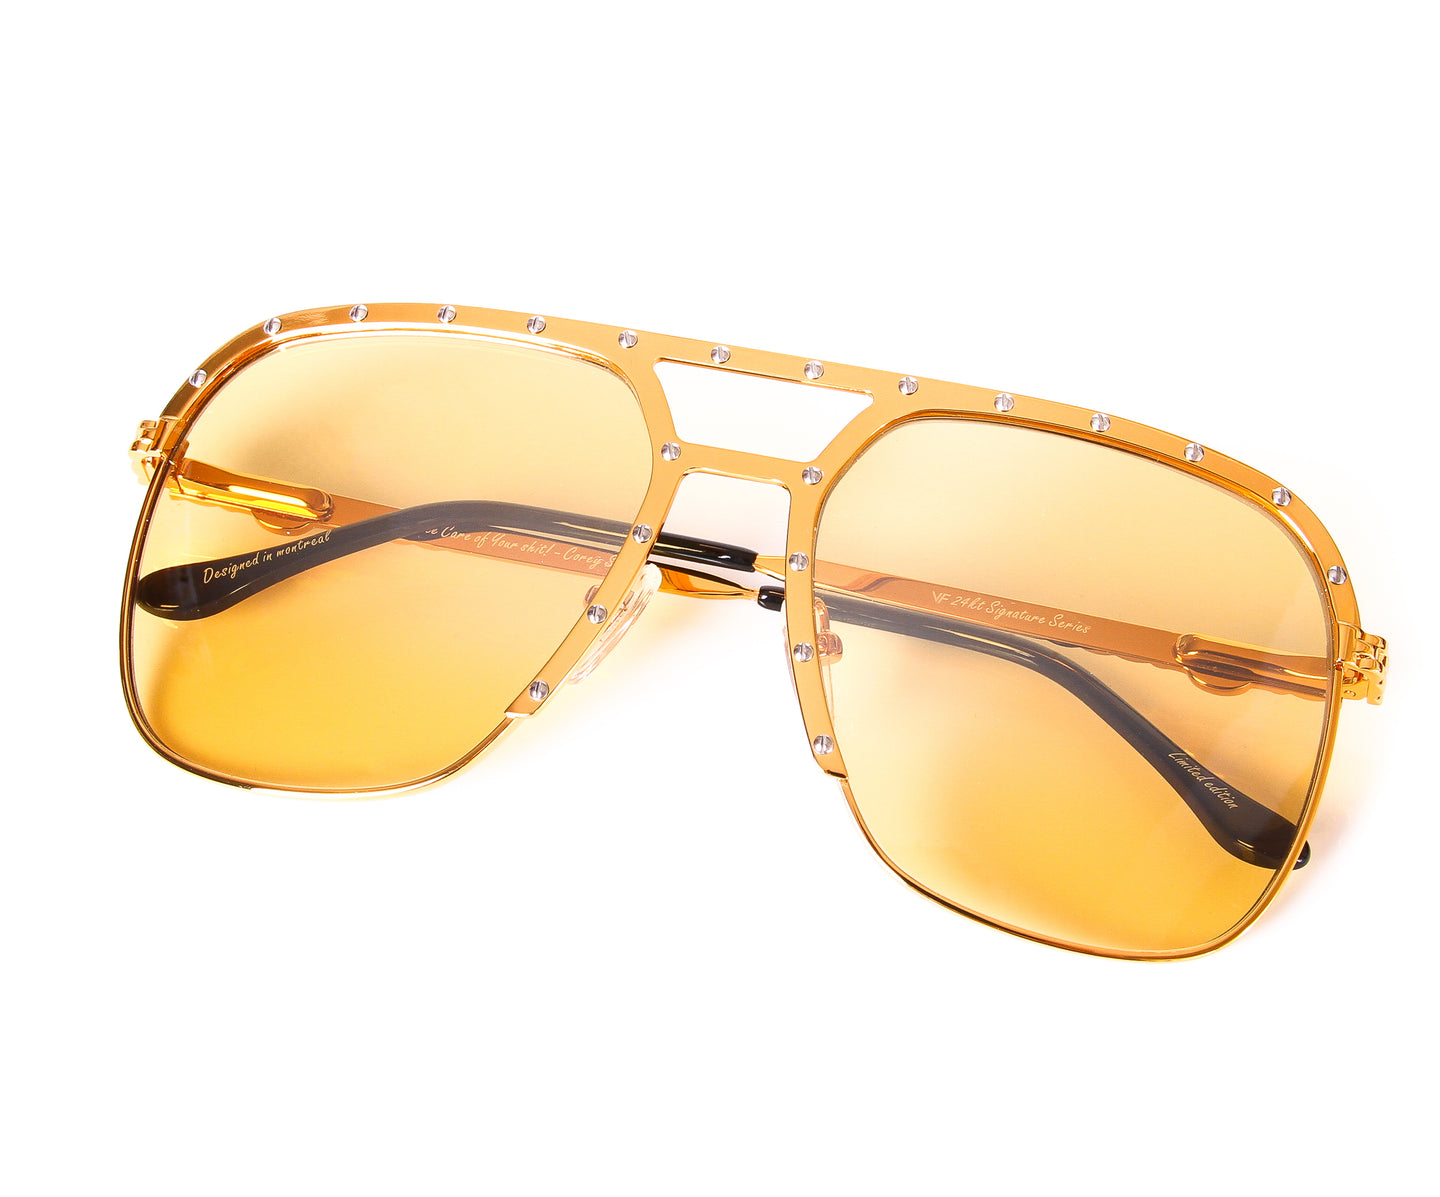 Axel Masterpiece 24kt Gold (Amber), VF Masterpiece , glasses frames, eyeglasses online, eyeglass frames, mens glasses, womens glasses, buy glasses online, designer eyeglasses, vintage sunglasses, retro sunglasses, vintage glasses, sunglass, eyeglass, glasses, lens, vintage frames company, vf